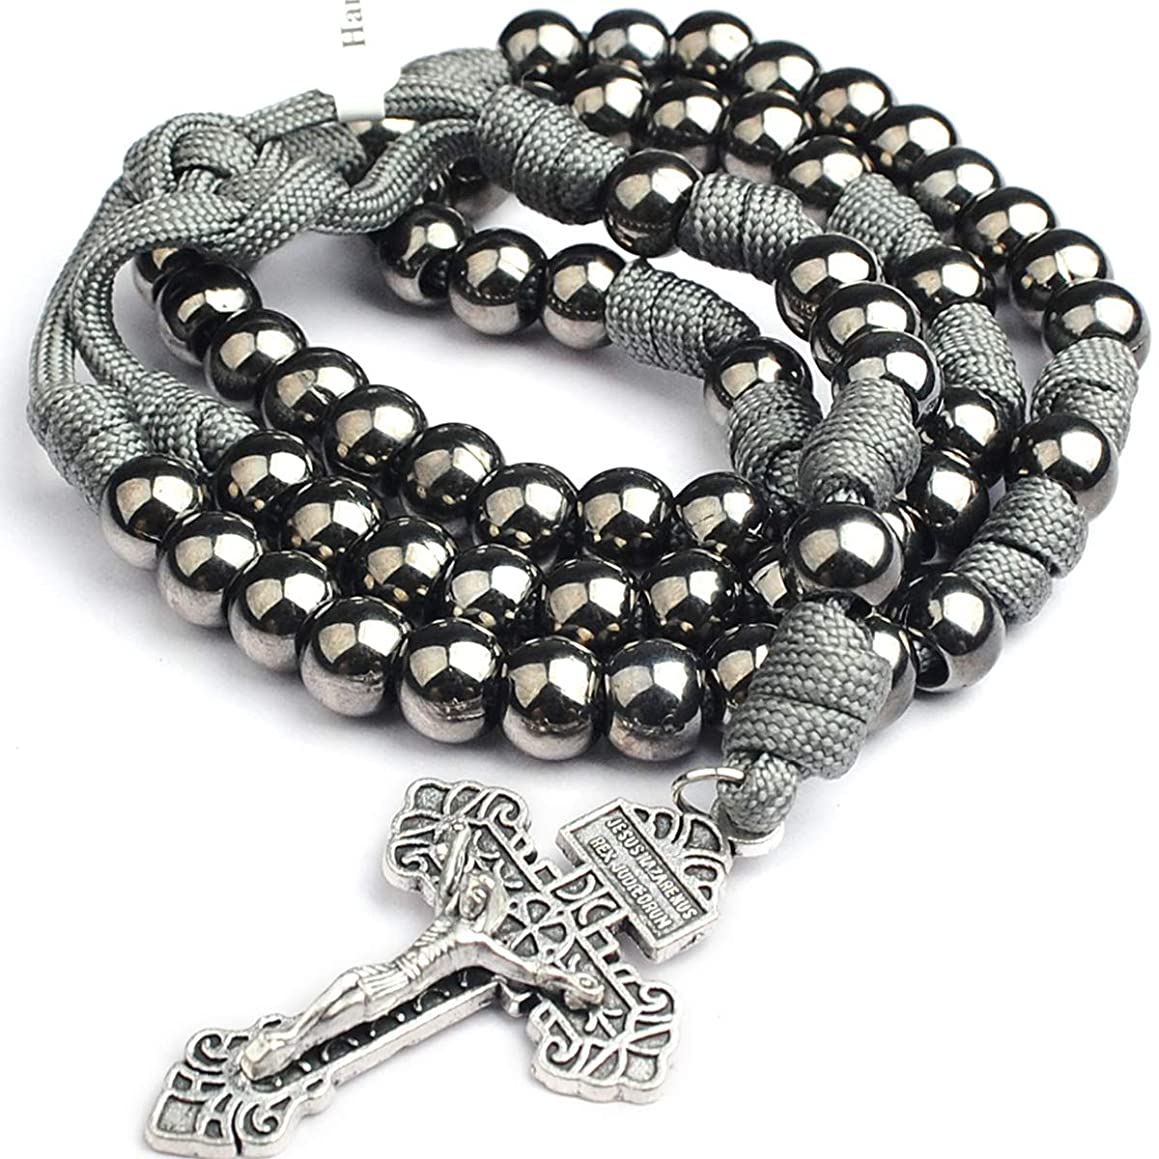 HanlinCC 10mm Gun Black Metal Beads 19.7 Inch Rosary with Strong Cord with Anti-Silver Army Cross with Metal Gift Box